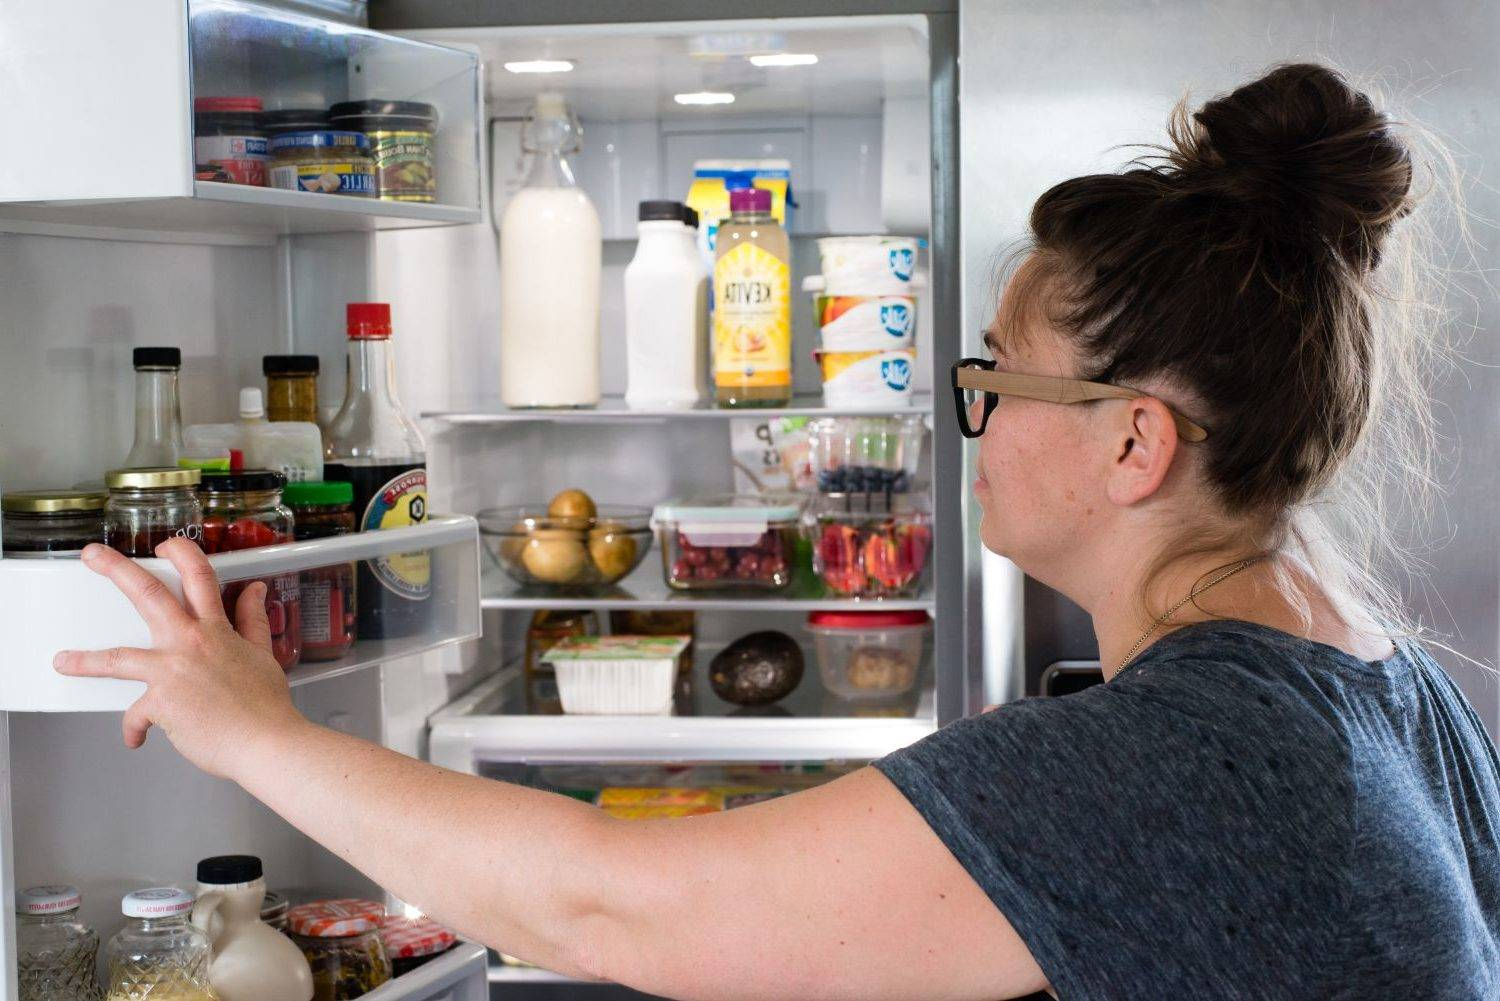 Rose checking what's in her refrigerator.